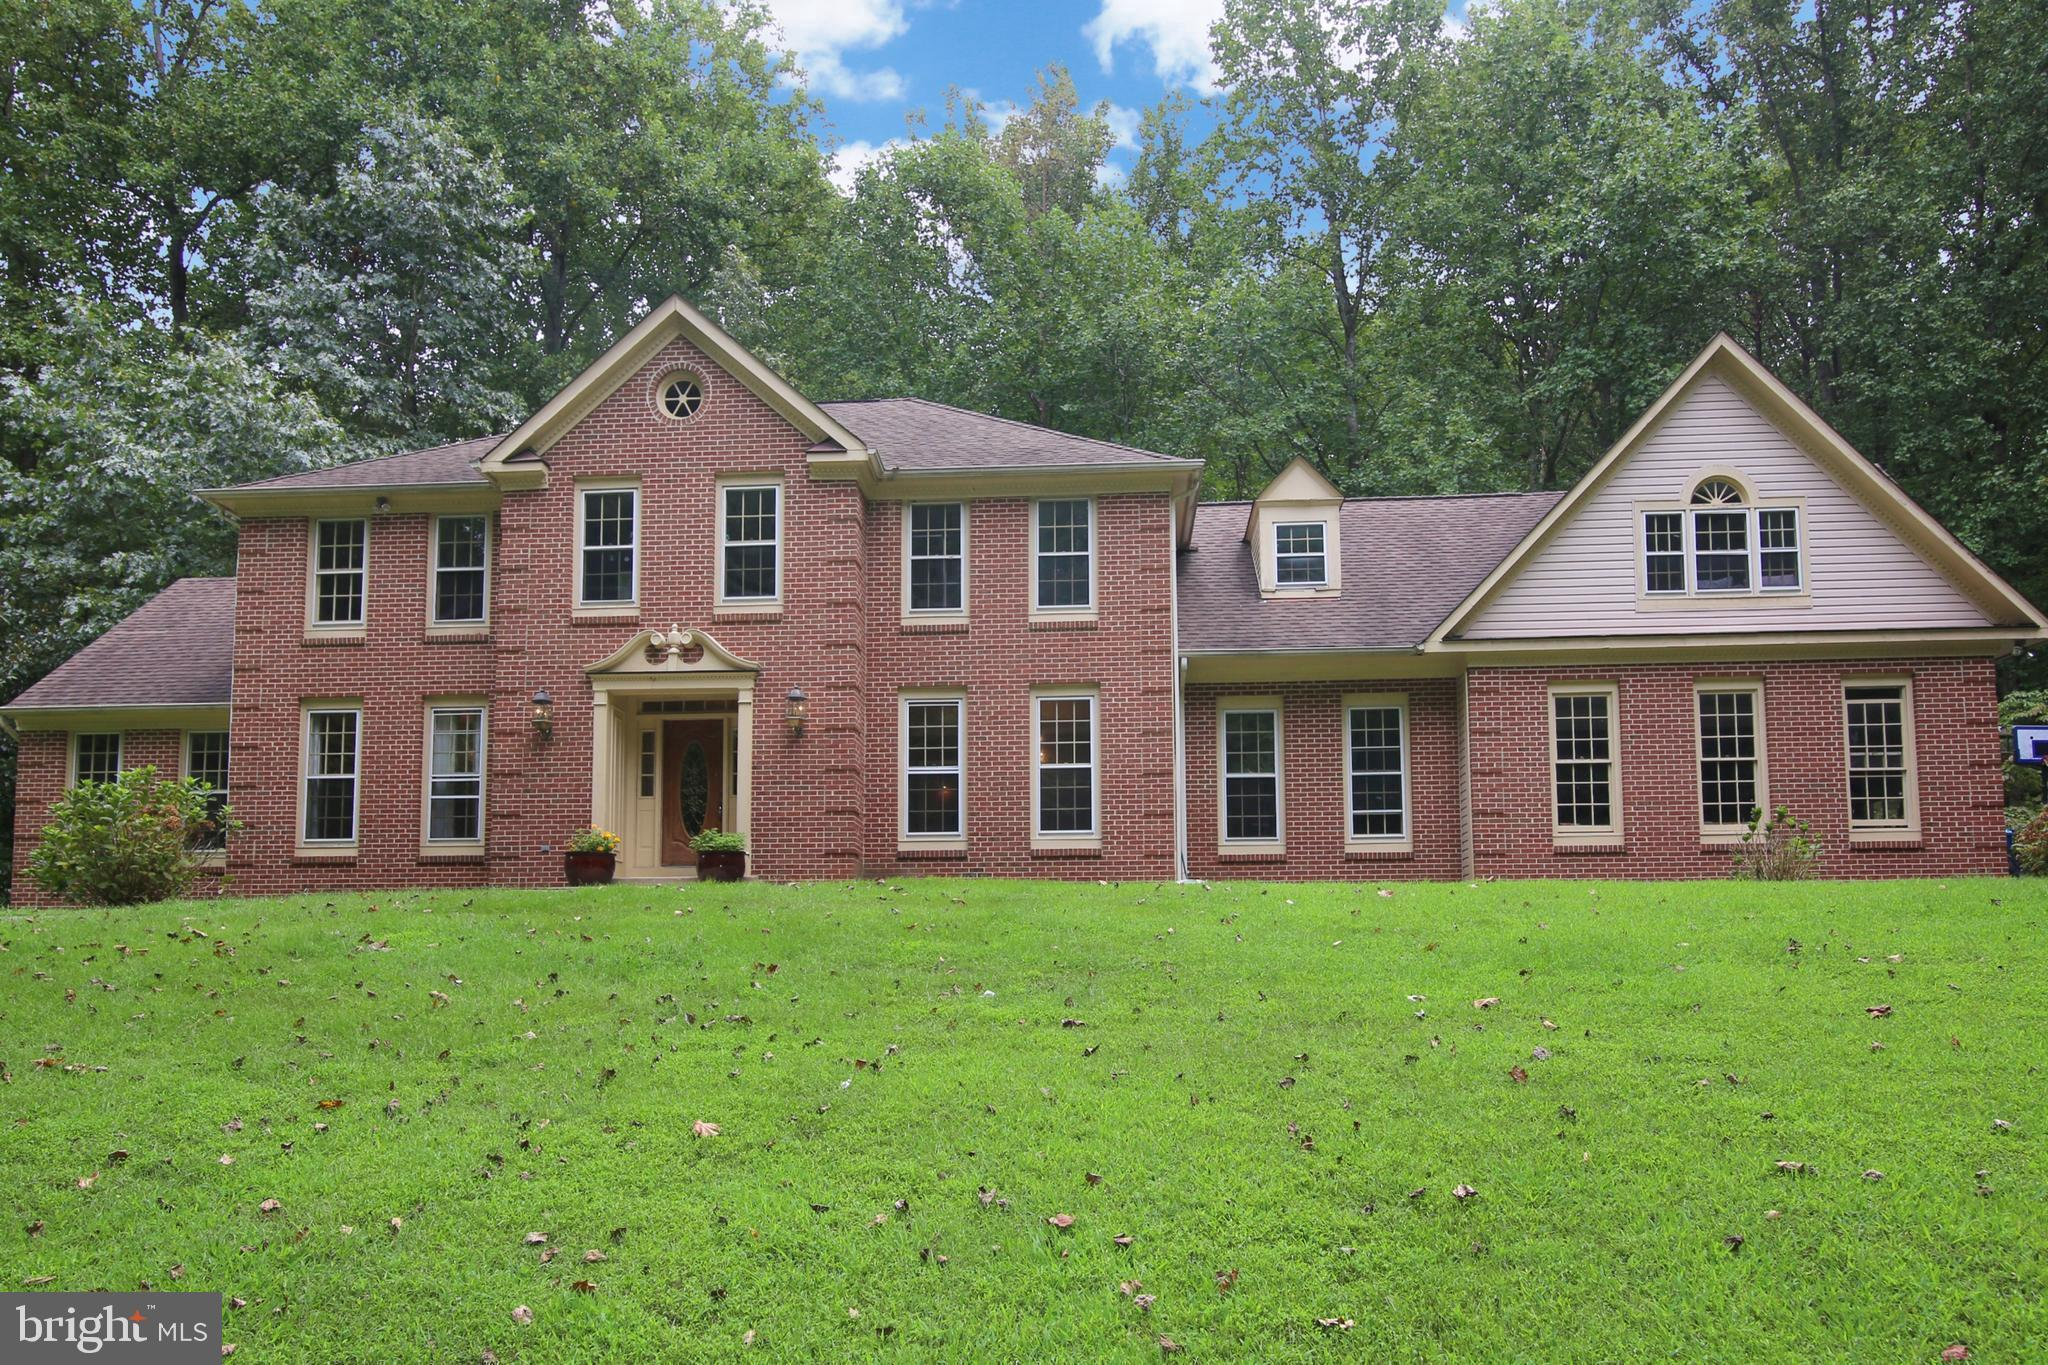 6501 Hanover Heights Trl, Clifton, VA, 20124